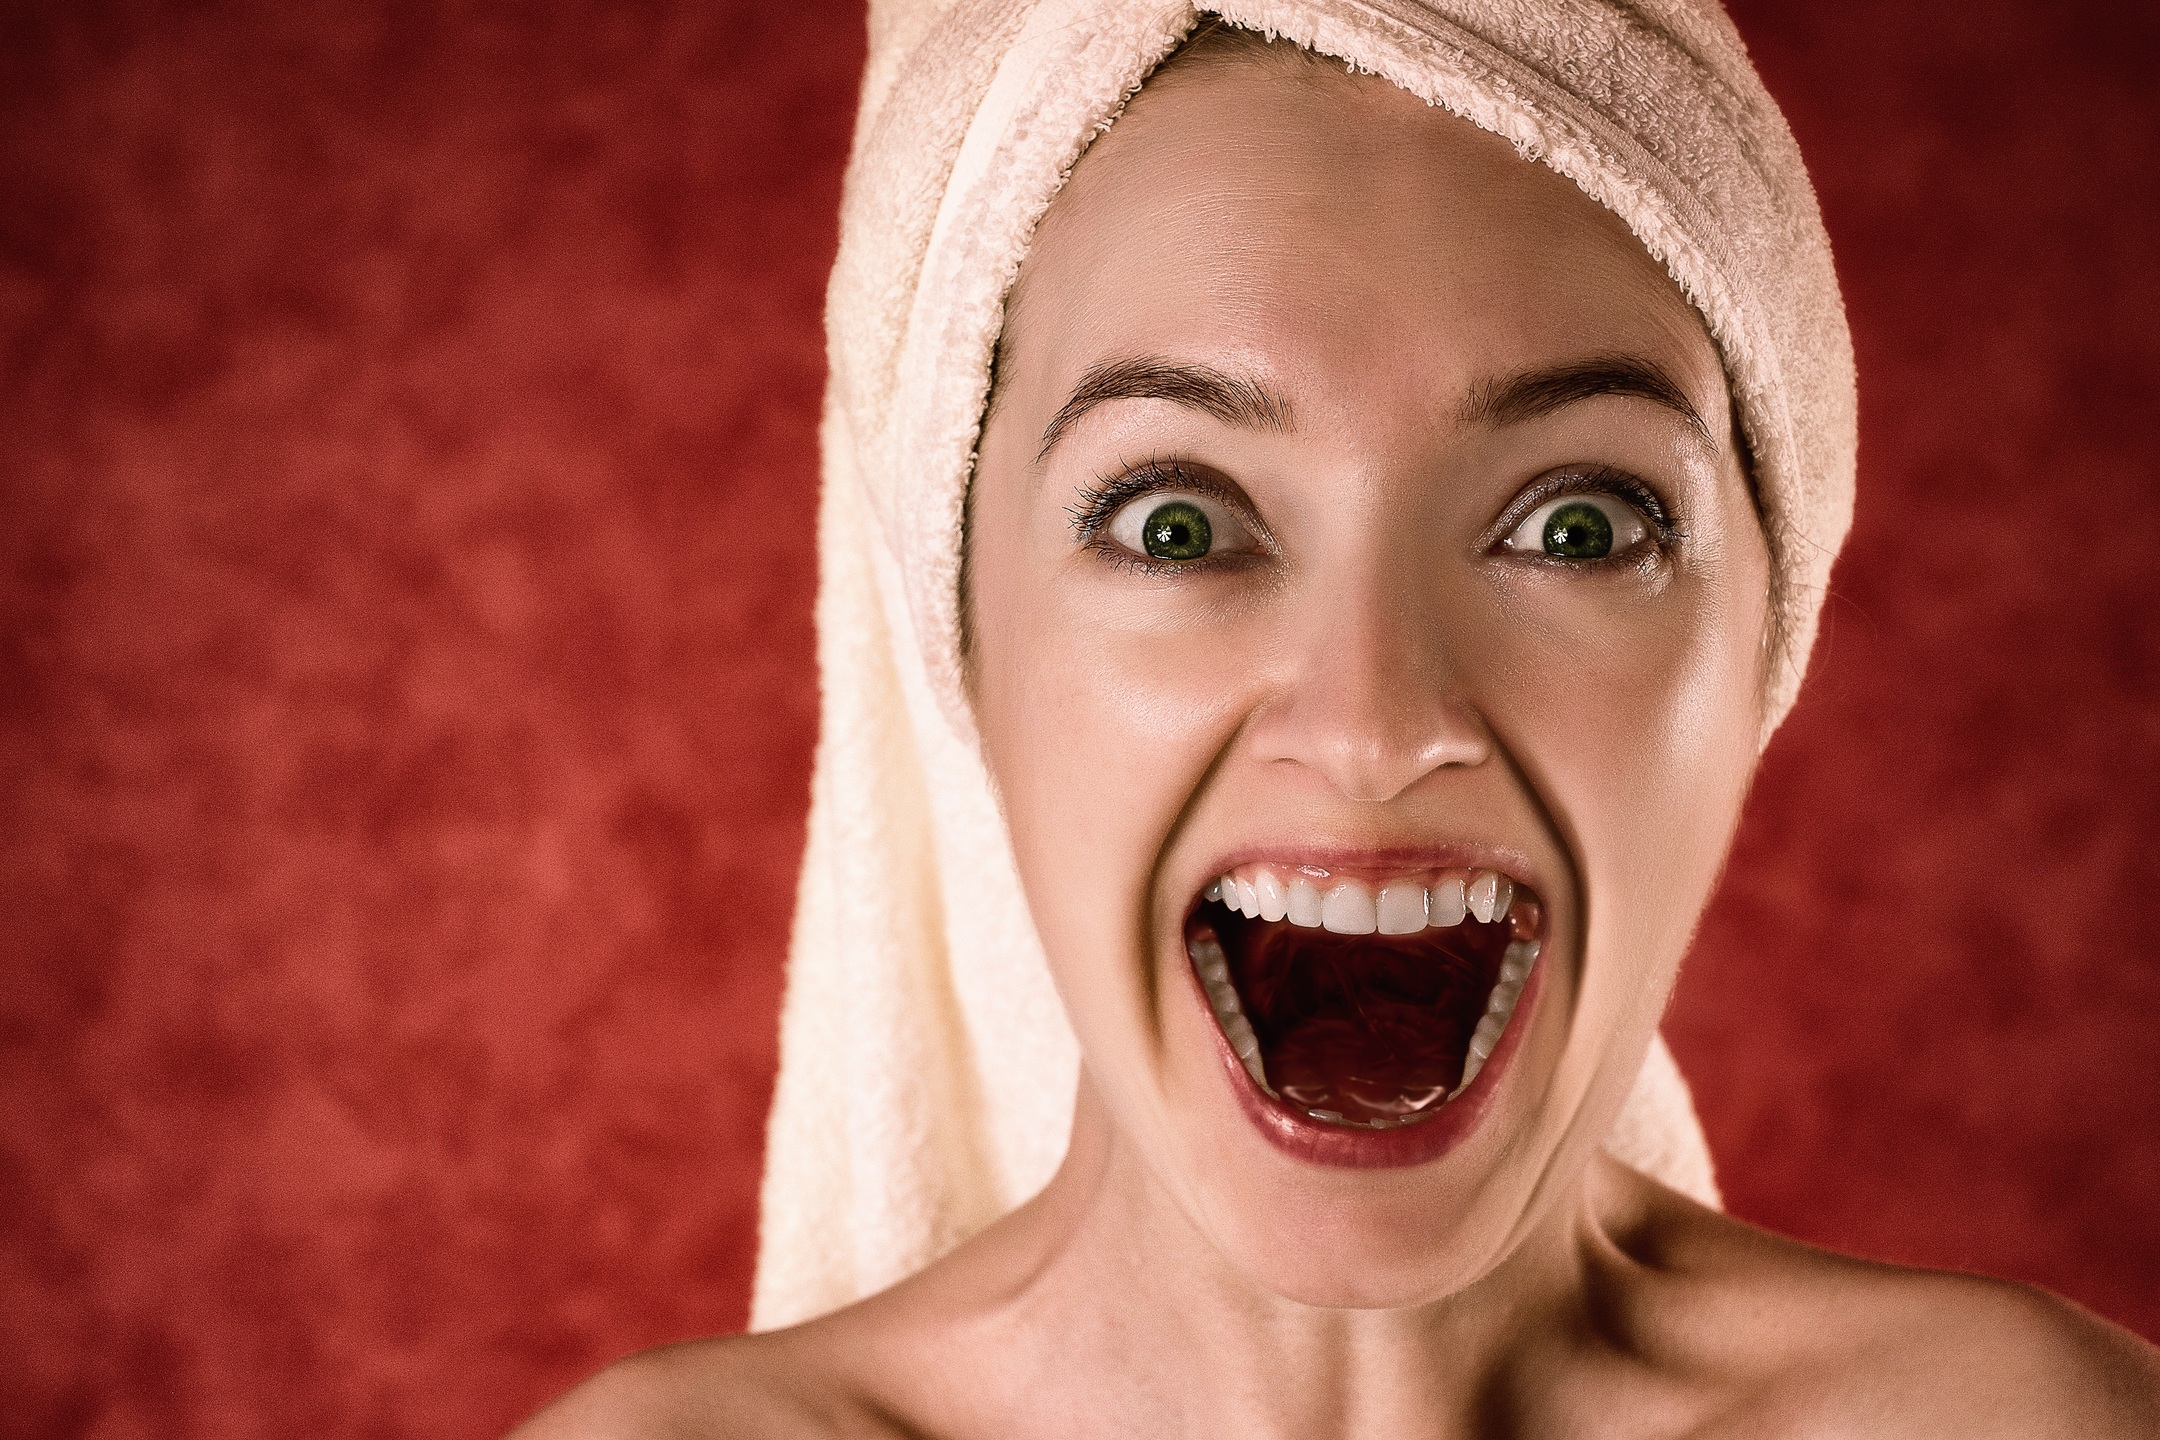 How to Get Rid of Yellow Teeth Using Home Remedies